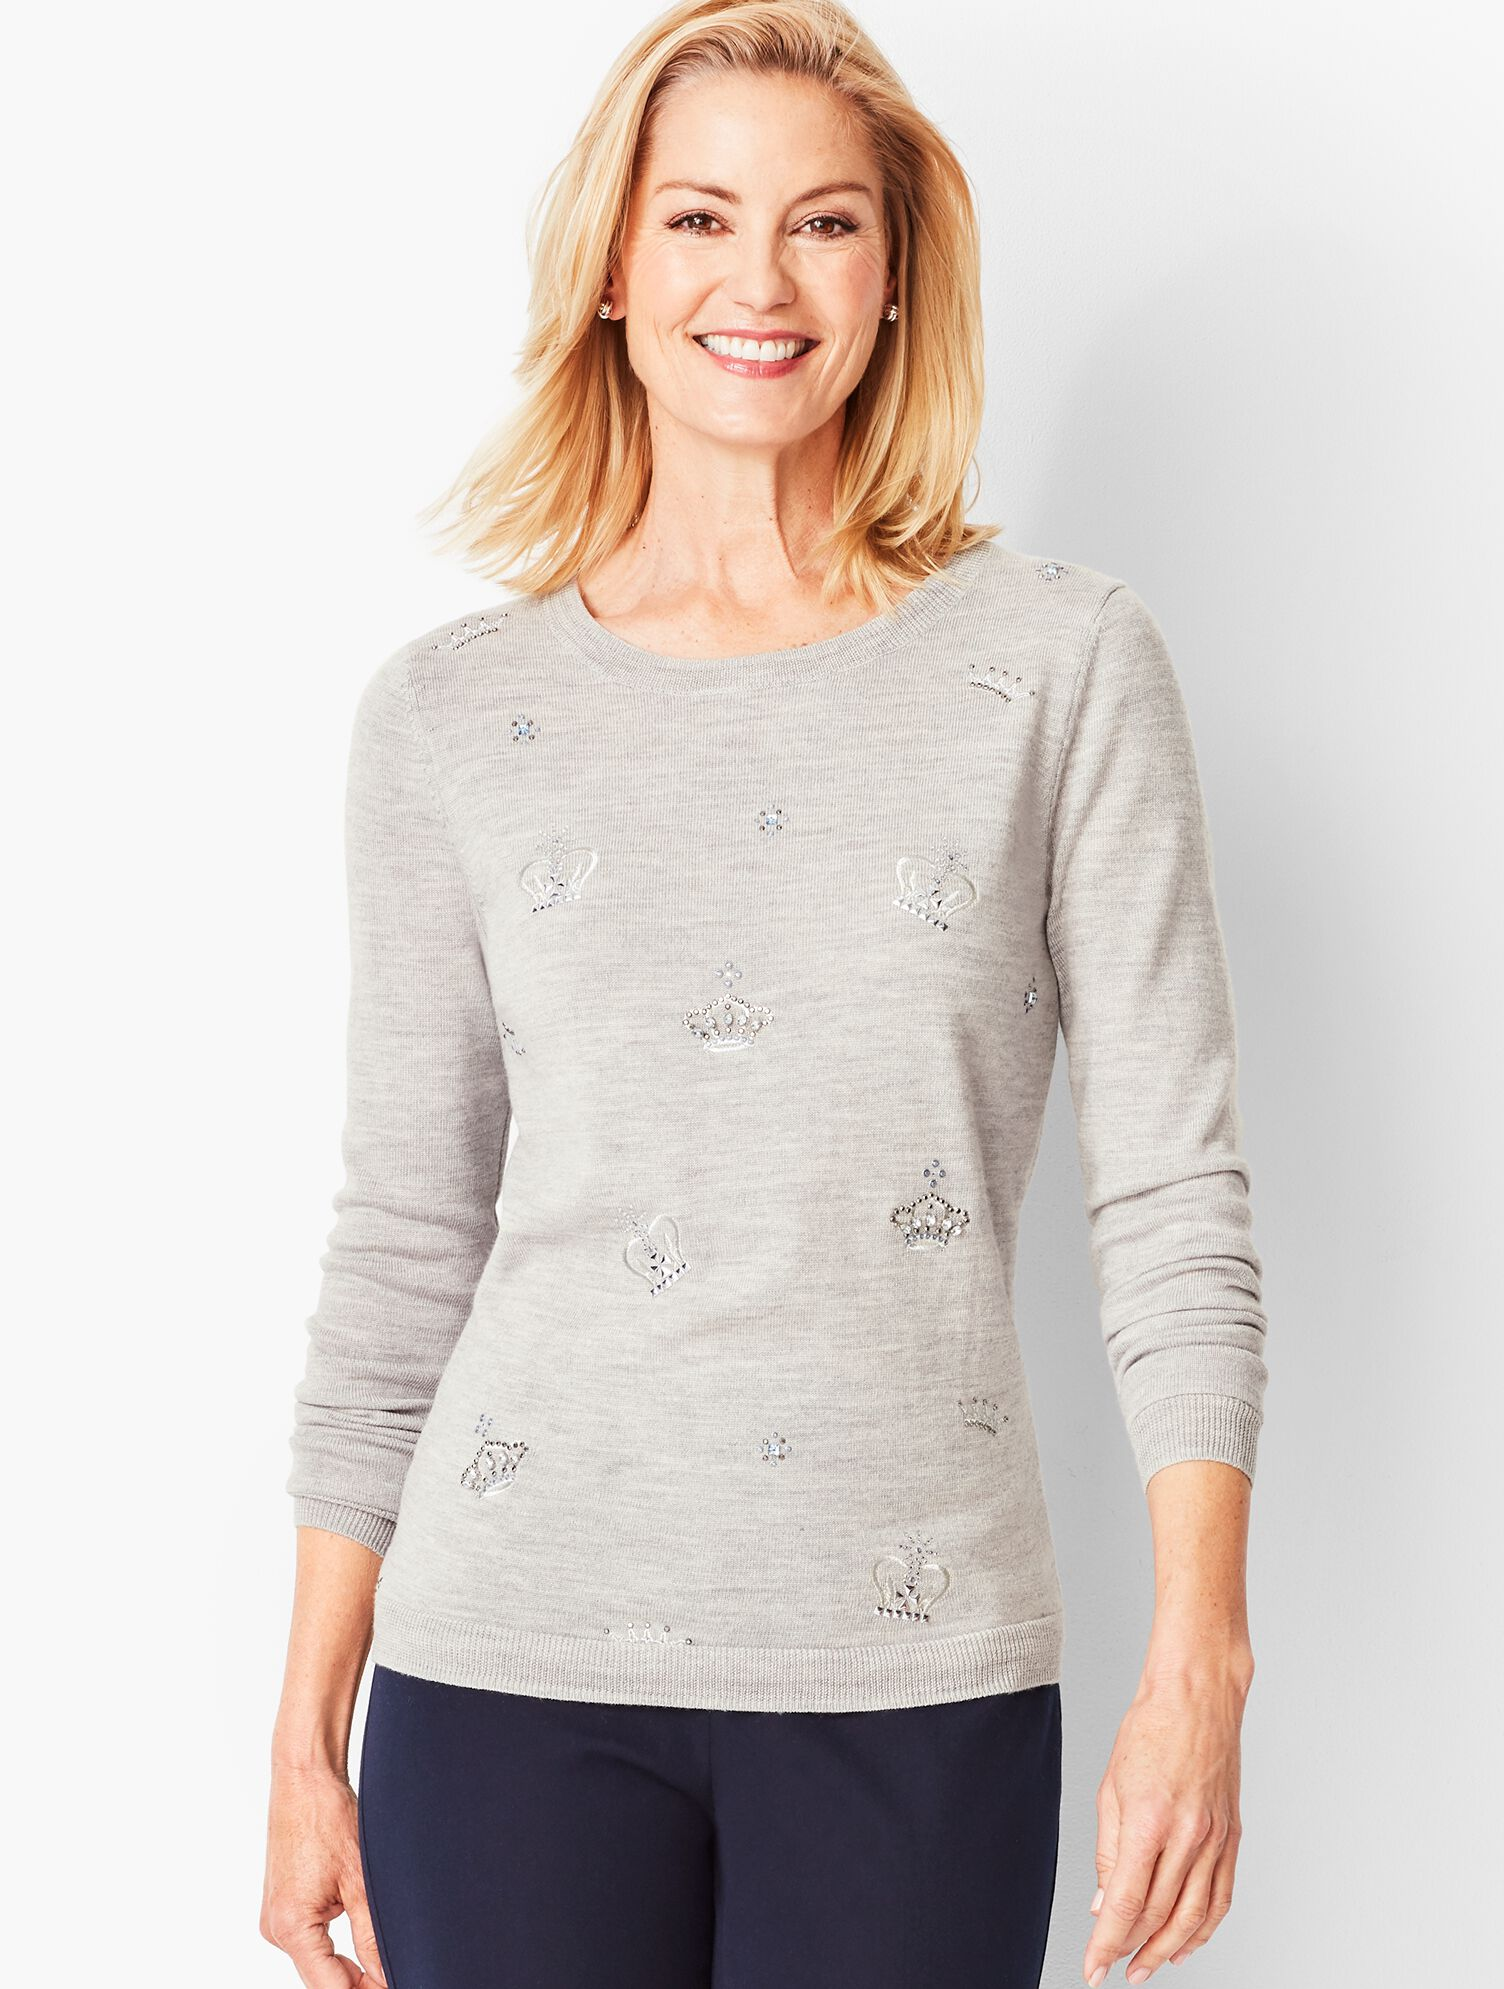 Embroidered & Beaded Merino Sweater | Talbots